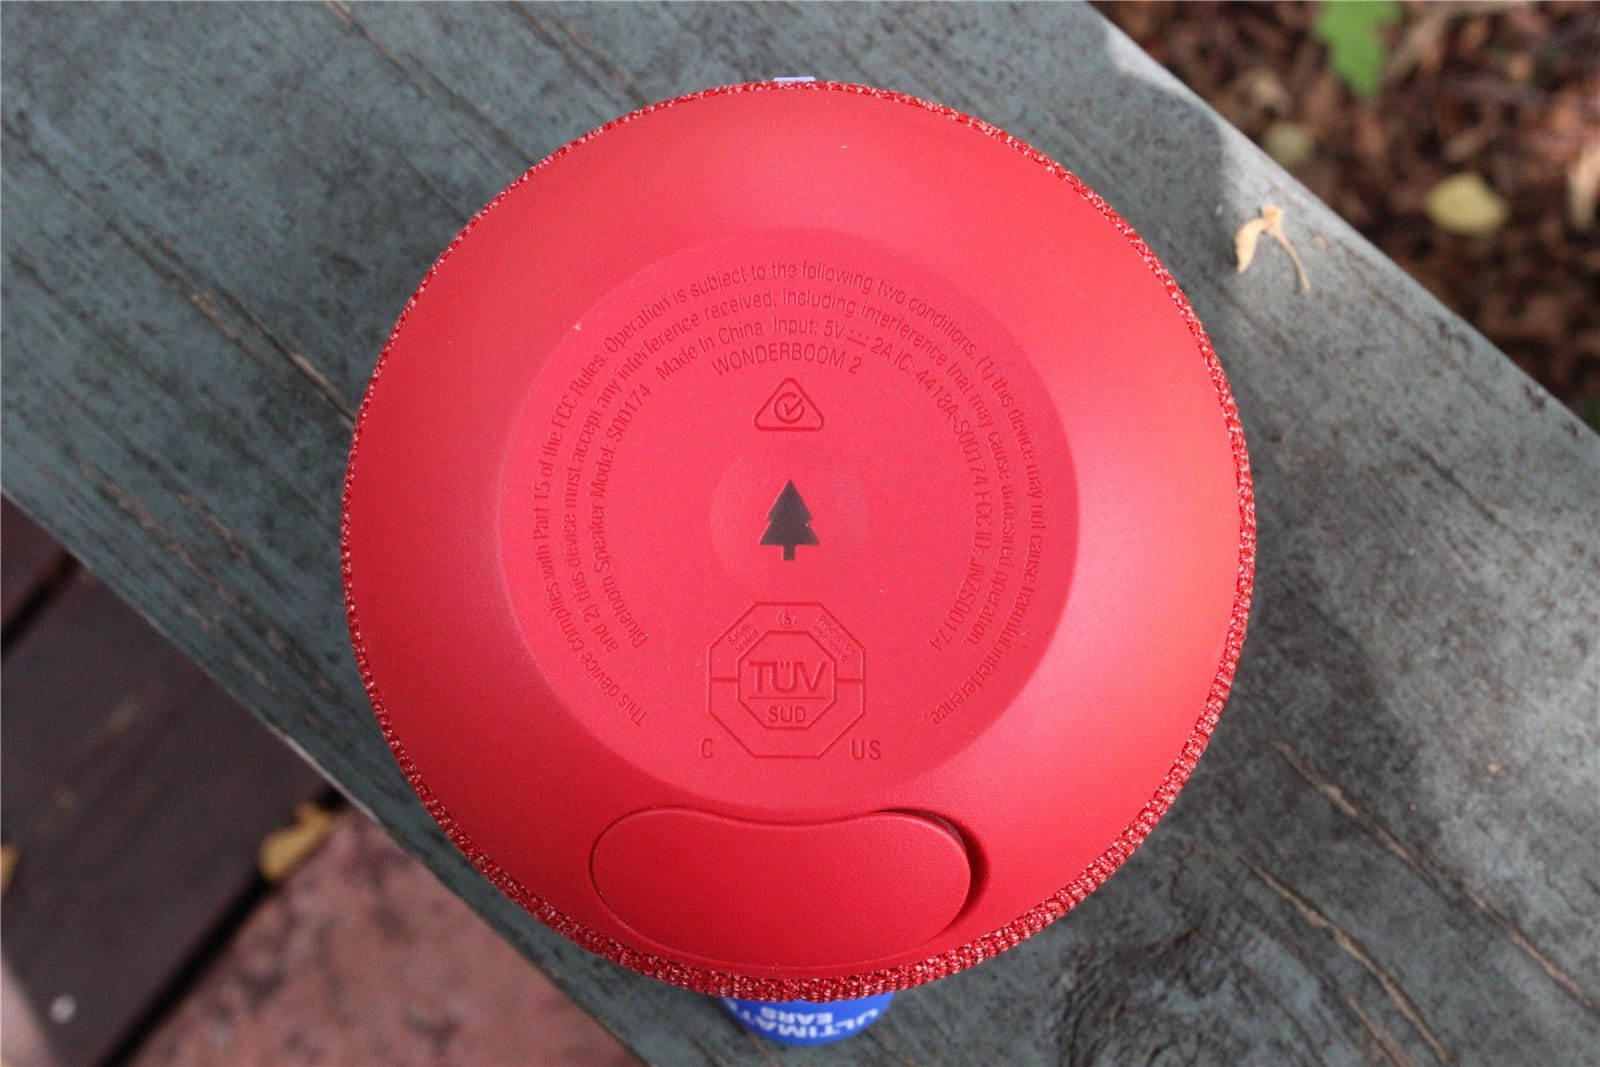 The button to activate Outdoor Mode on the Wonderboom 2.